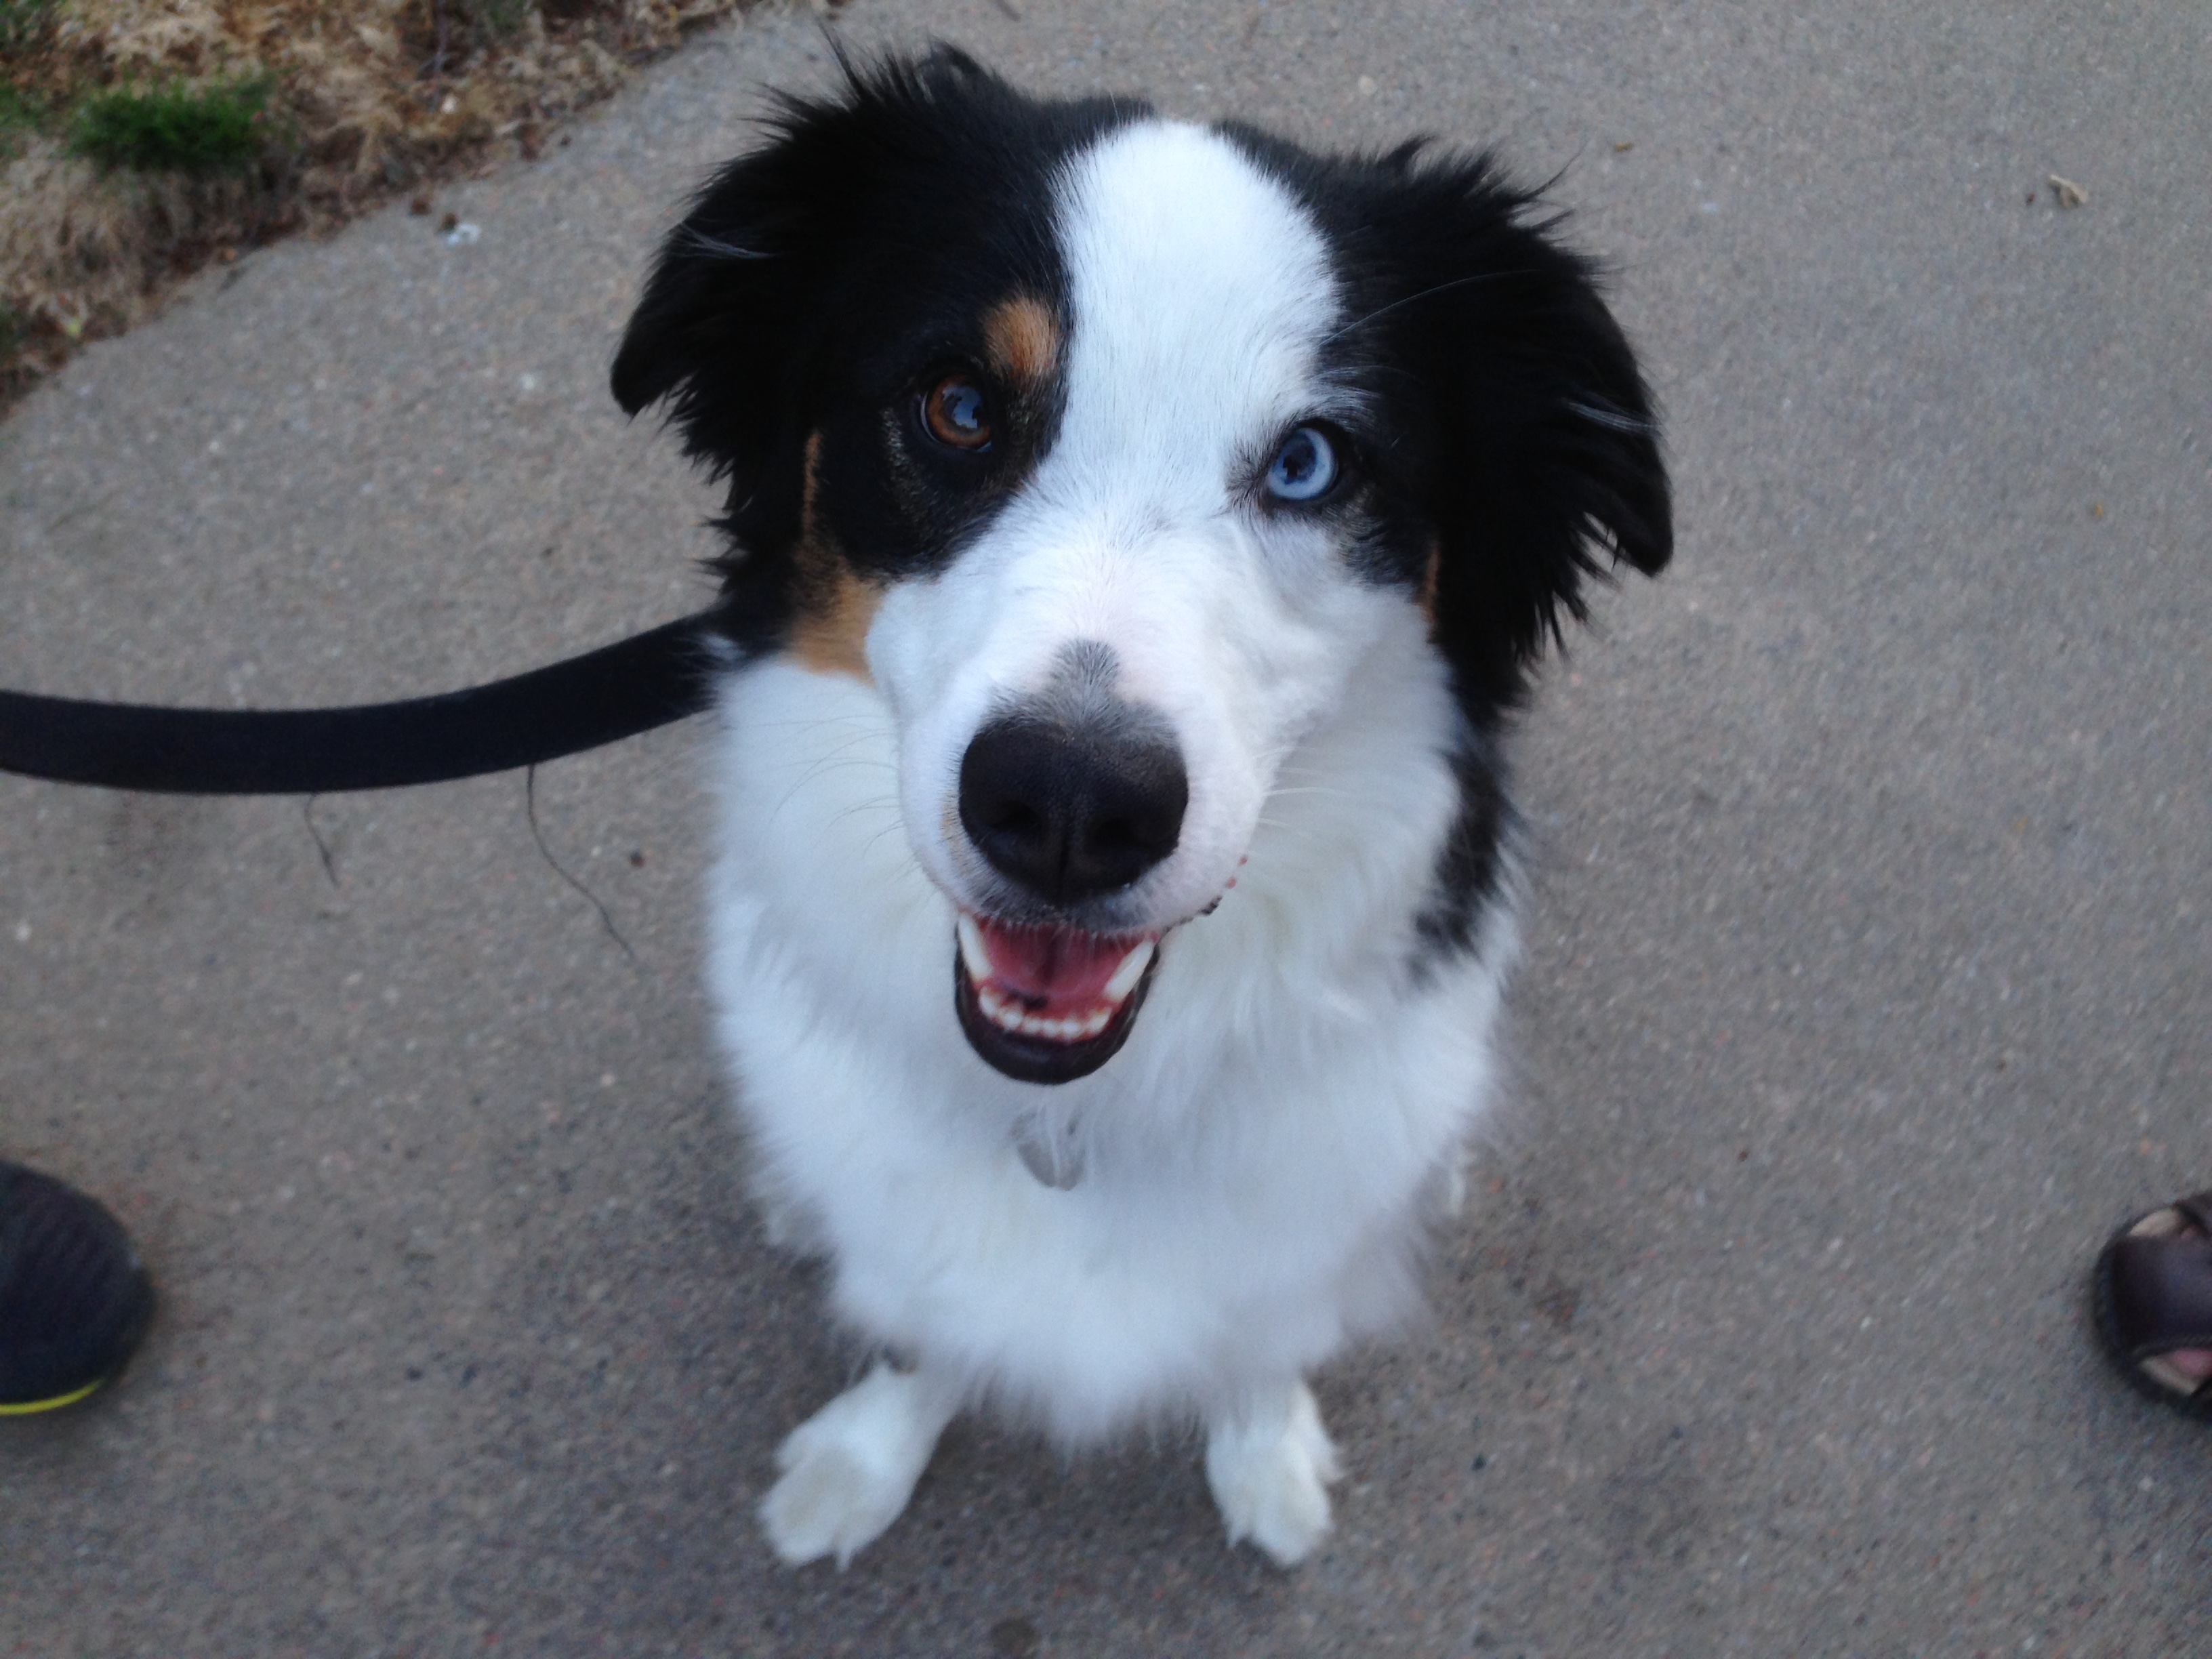 Dewey is a two year old Miniature Australian Shepherd who barks aggressively at visitors gets over excited when anyone knocks on the door is reactive to ... & Helping an Insecure Miniature Australian Shepherd Learn to Calm ... Pezcame.Com